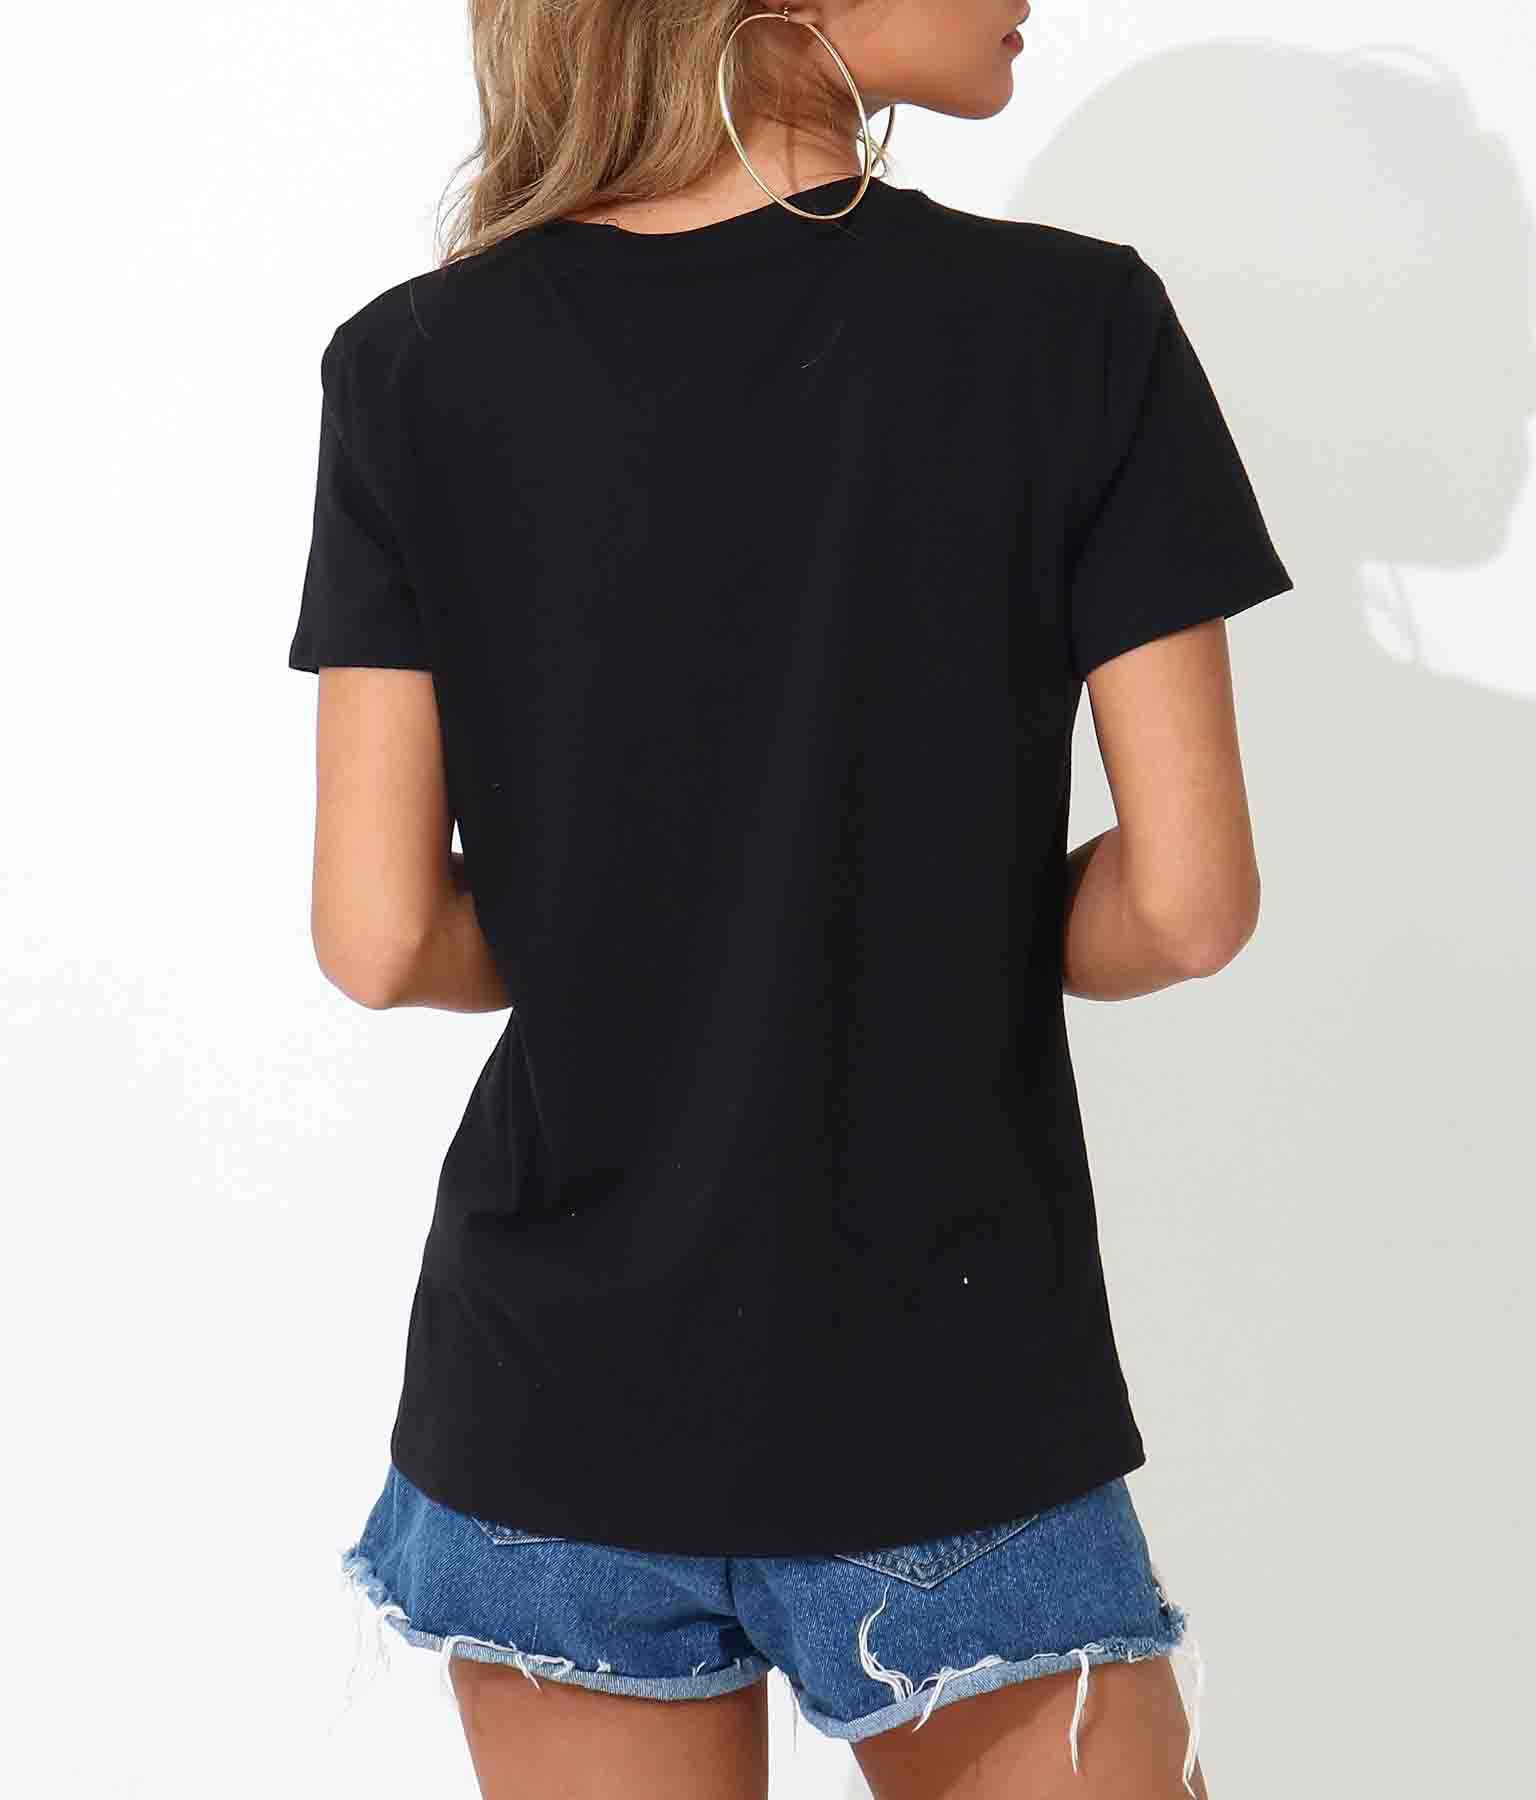 SS GUESS PLANET LOGO EASY TEE | GUESS